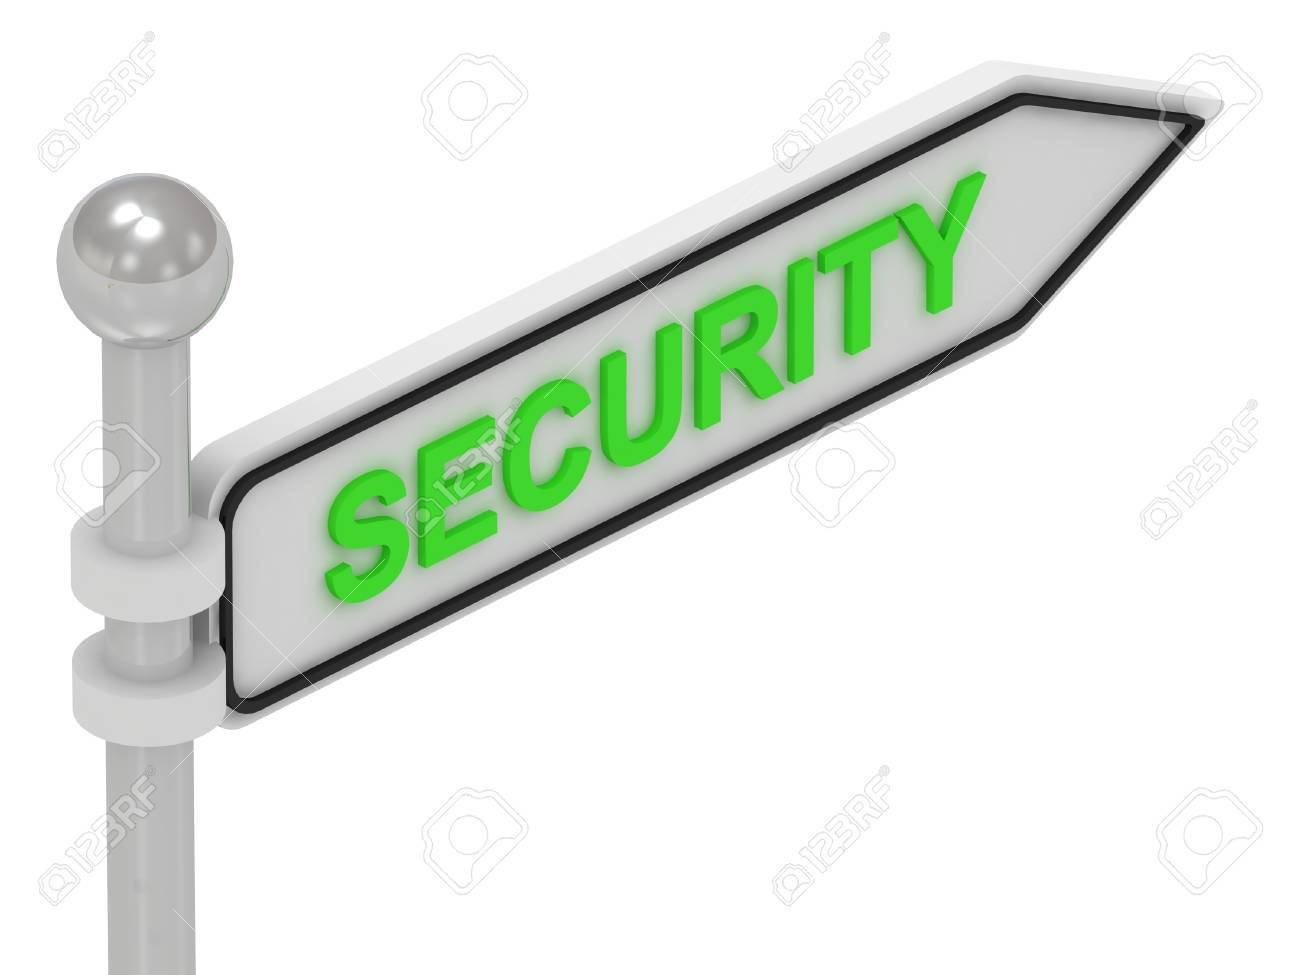 SECURITY arrow sign with letters on isolated white background Stock Photo - 14687305